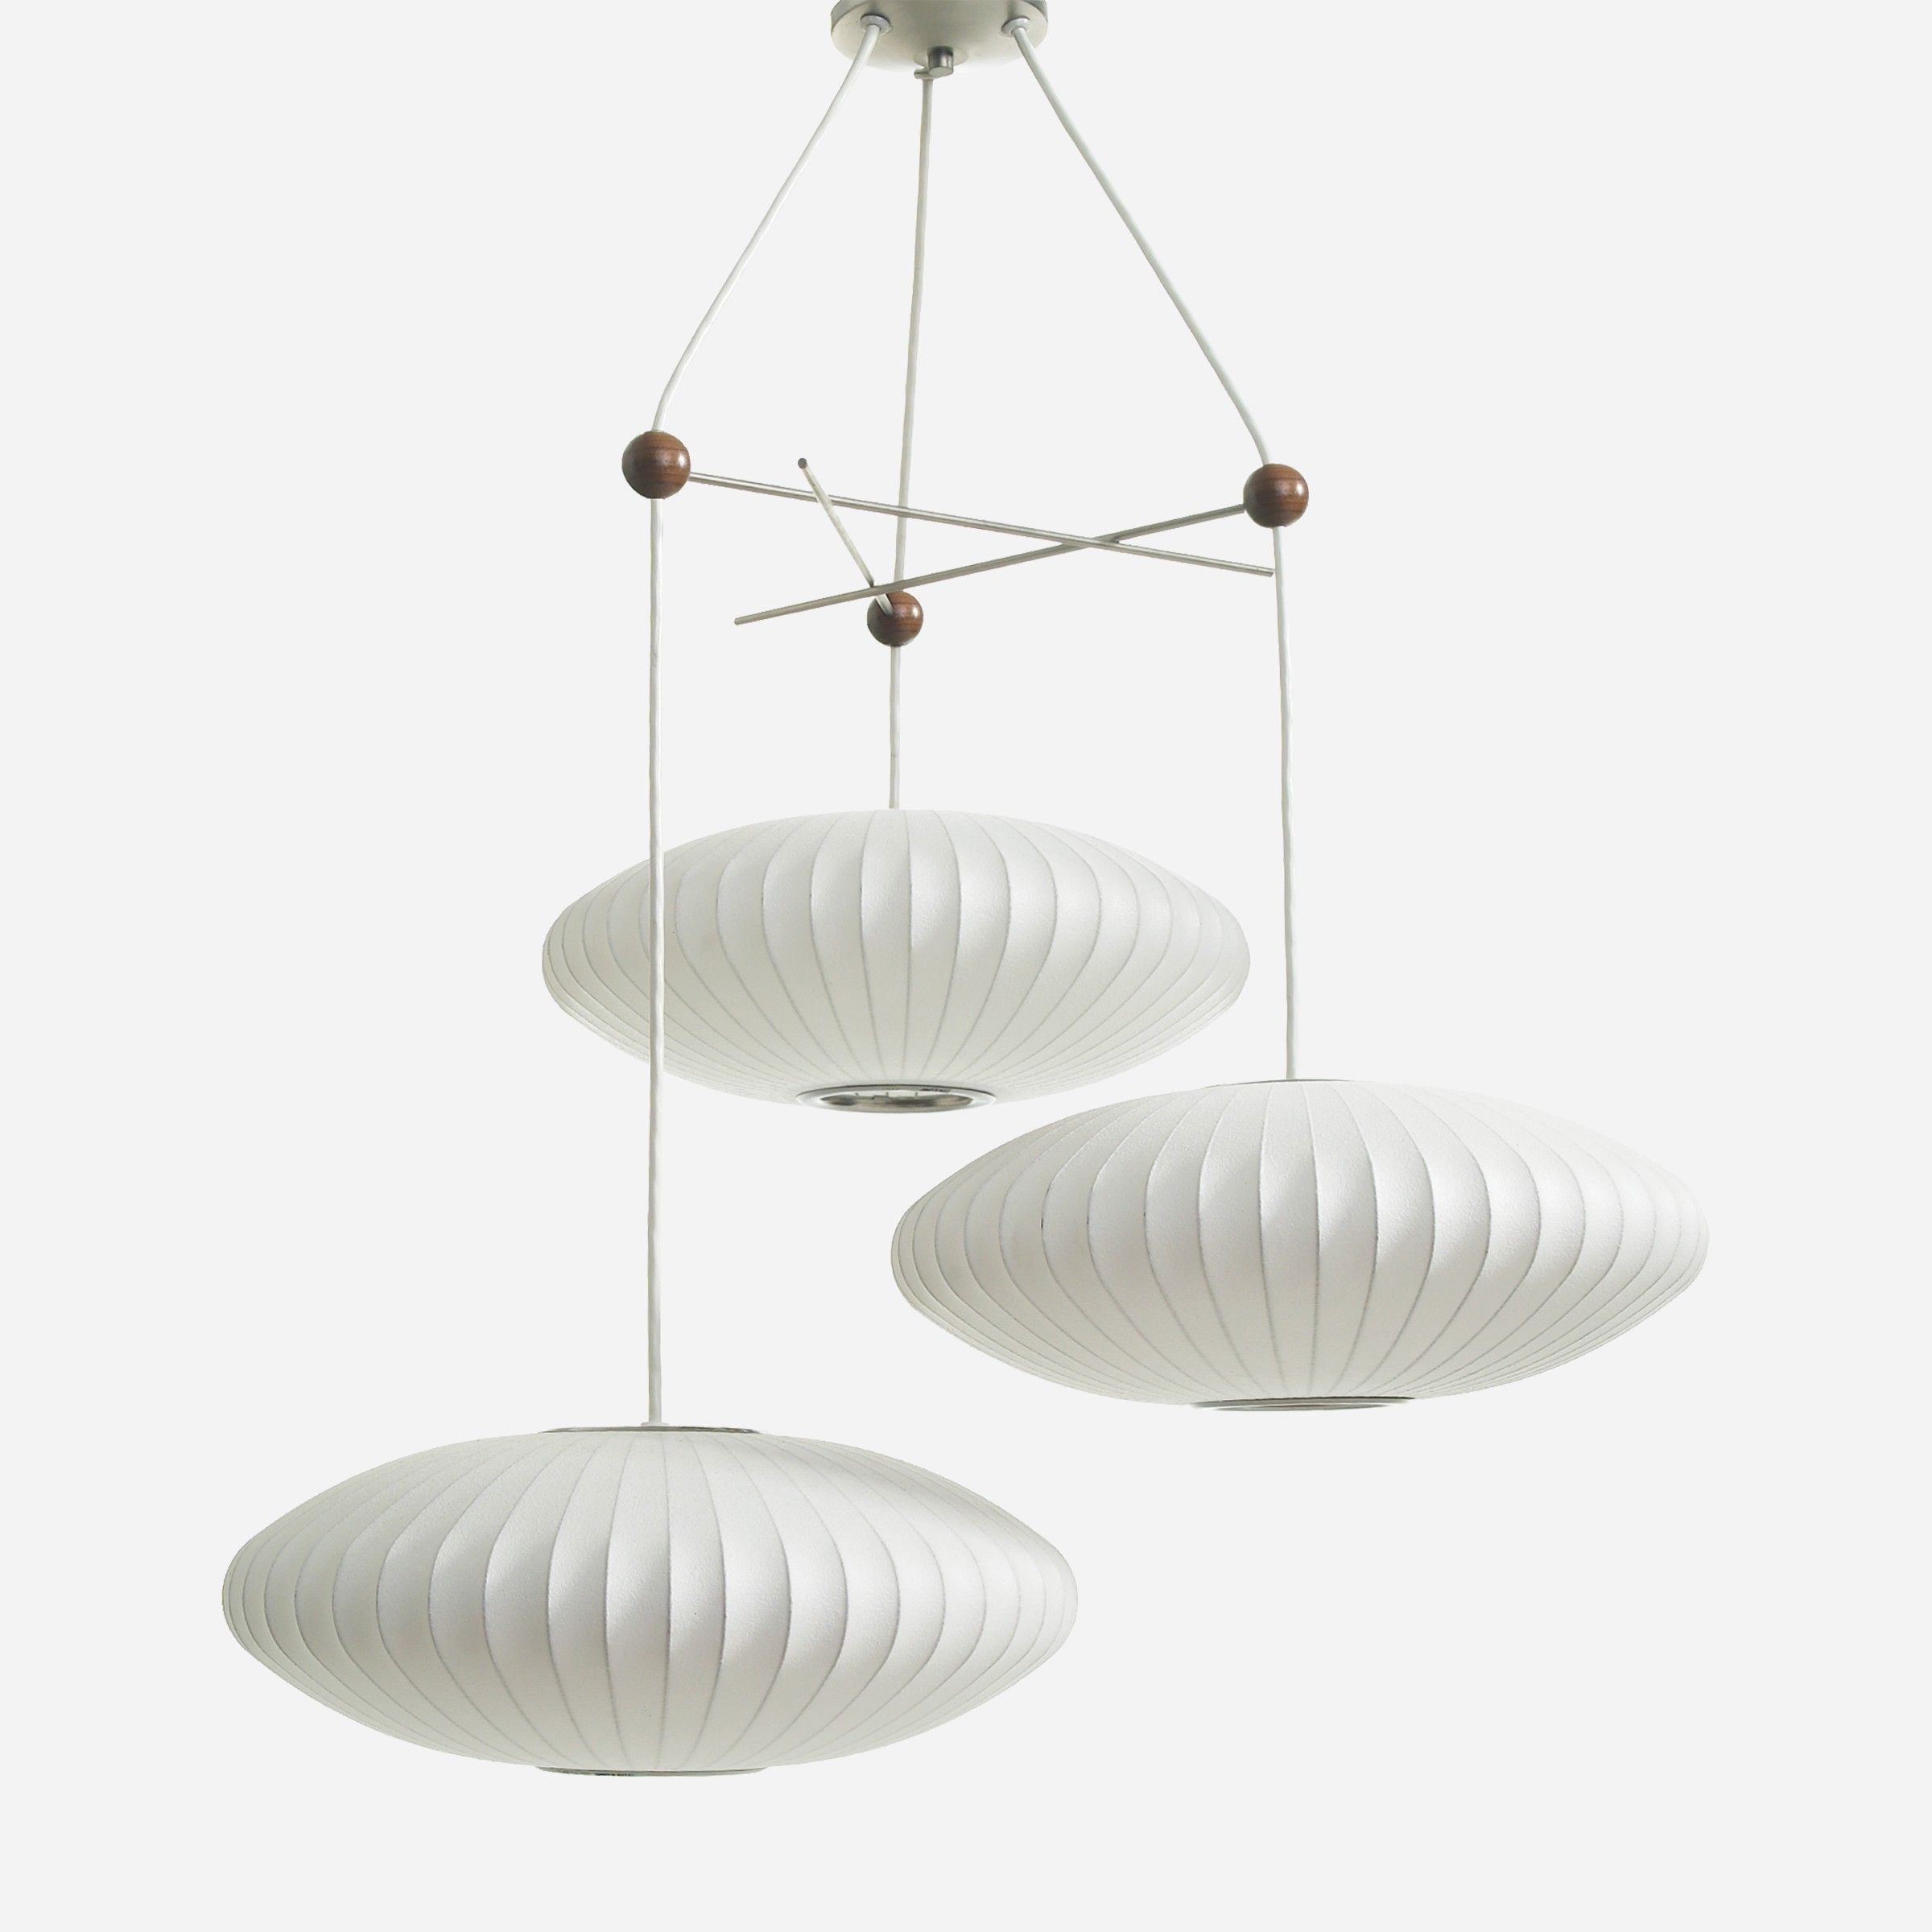 Modernica George Nelson Bubble l&s. They sell this frame any l&s can go on  sc 1 st  Pinterest & Modernica George Nelson Bubble lamps. They sell this frame any ... azcodes.com